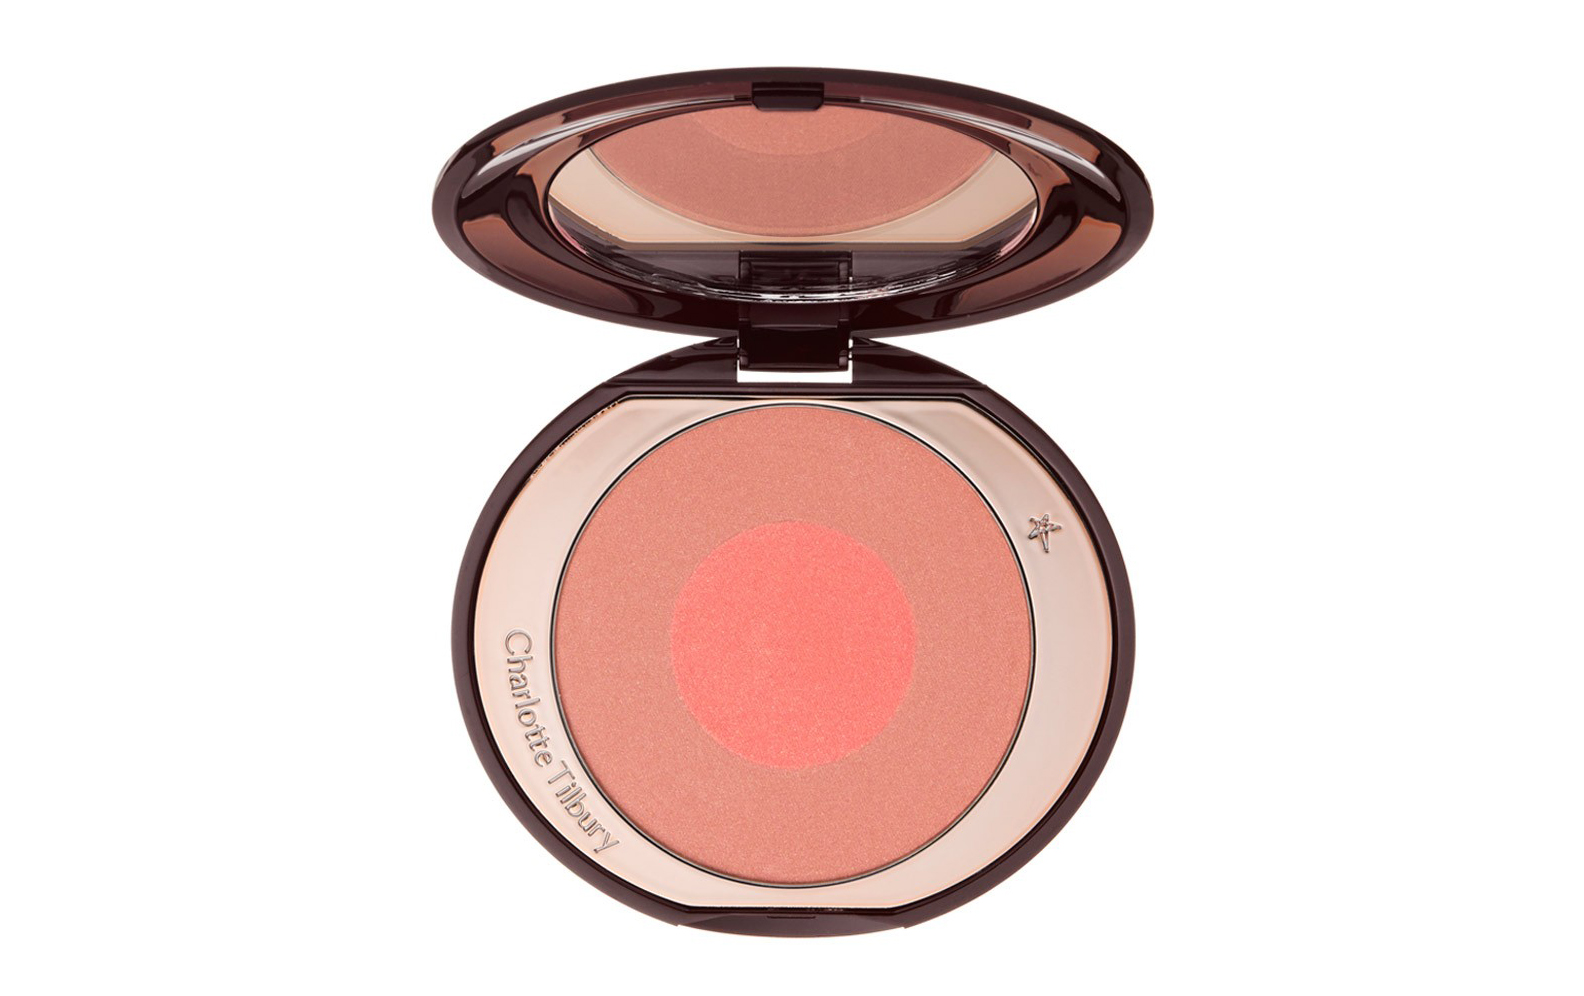 Charlotte Tilbury Cheek to Chic Swish & Pop Blush